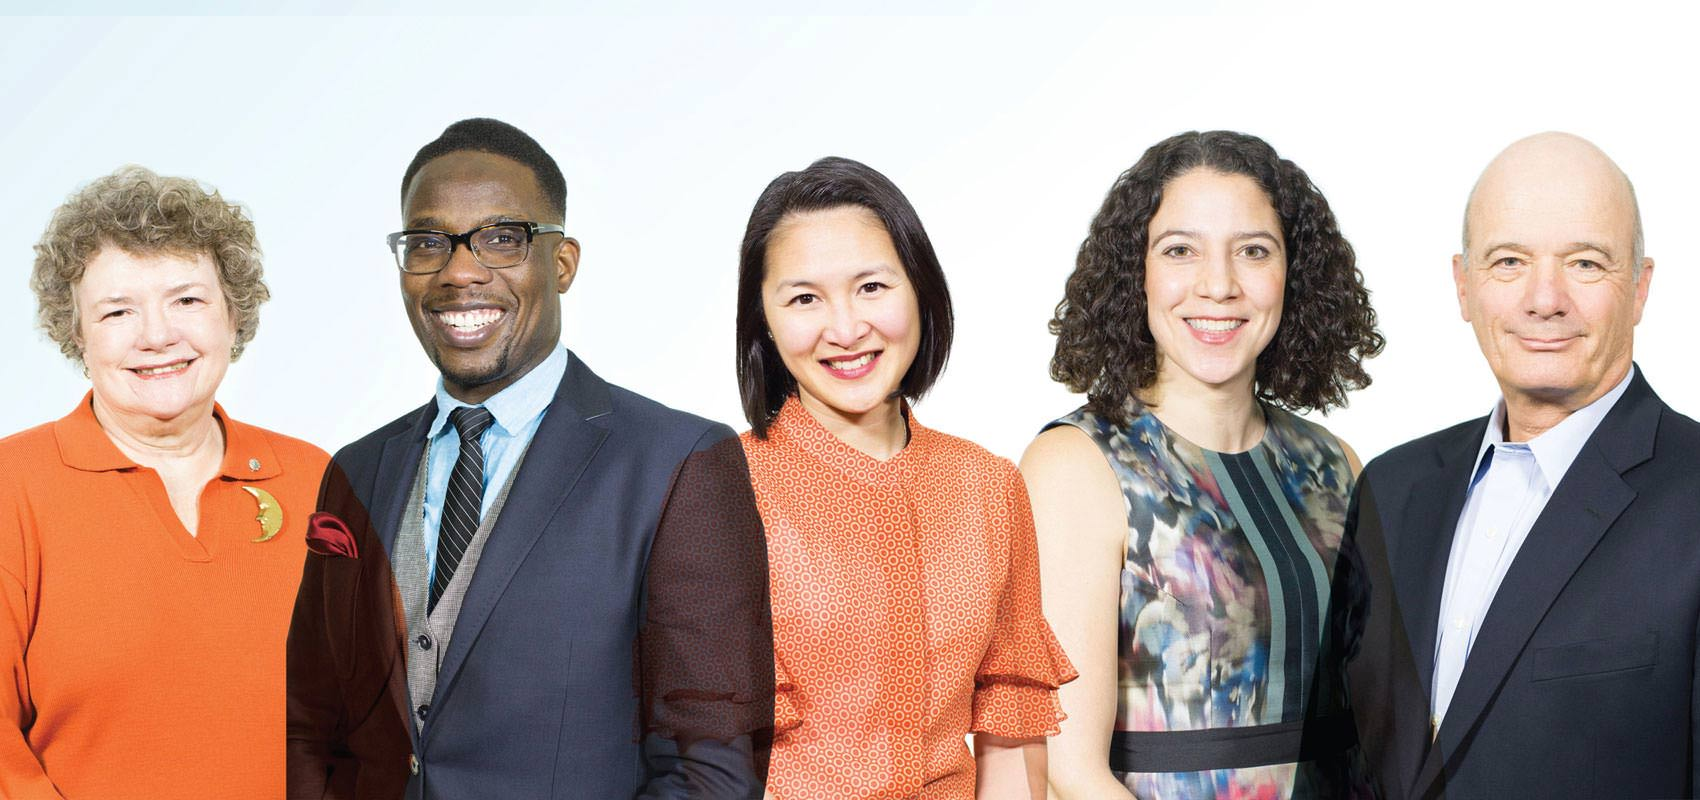 A diverse group of three business women and two business men smiling